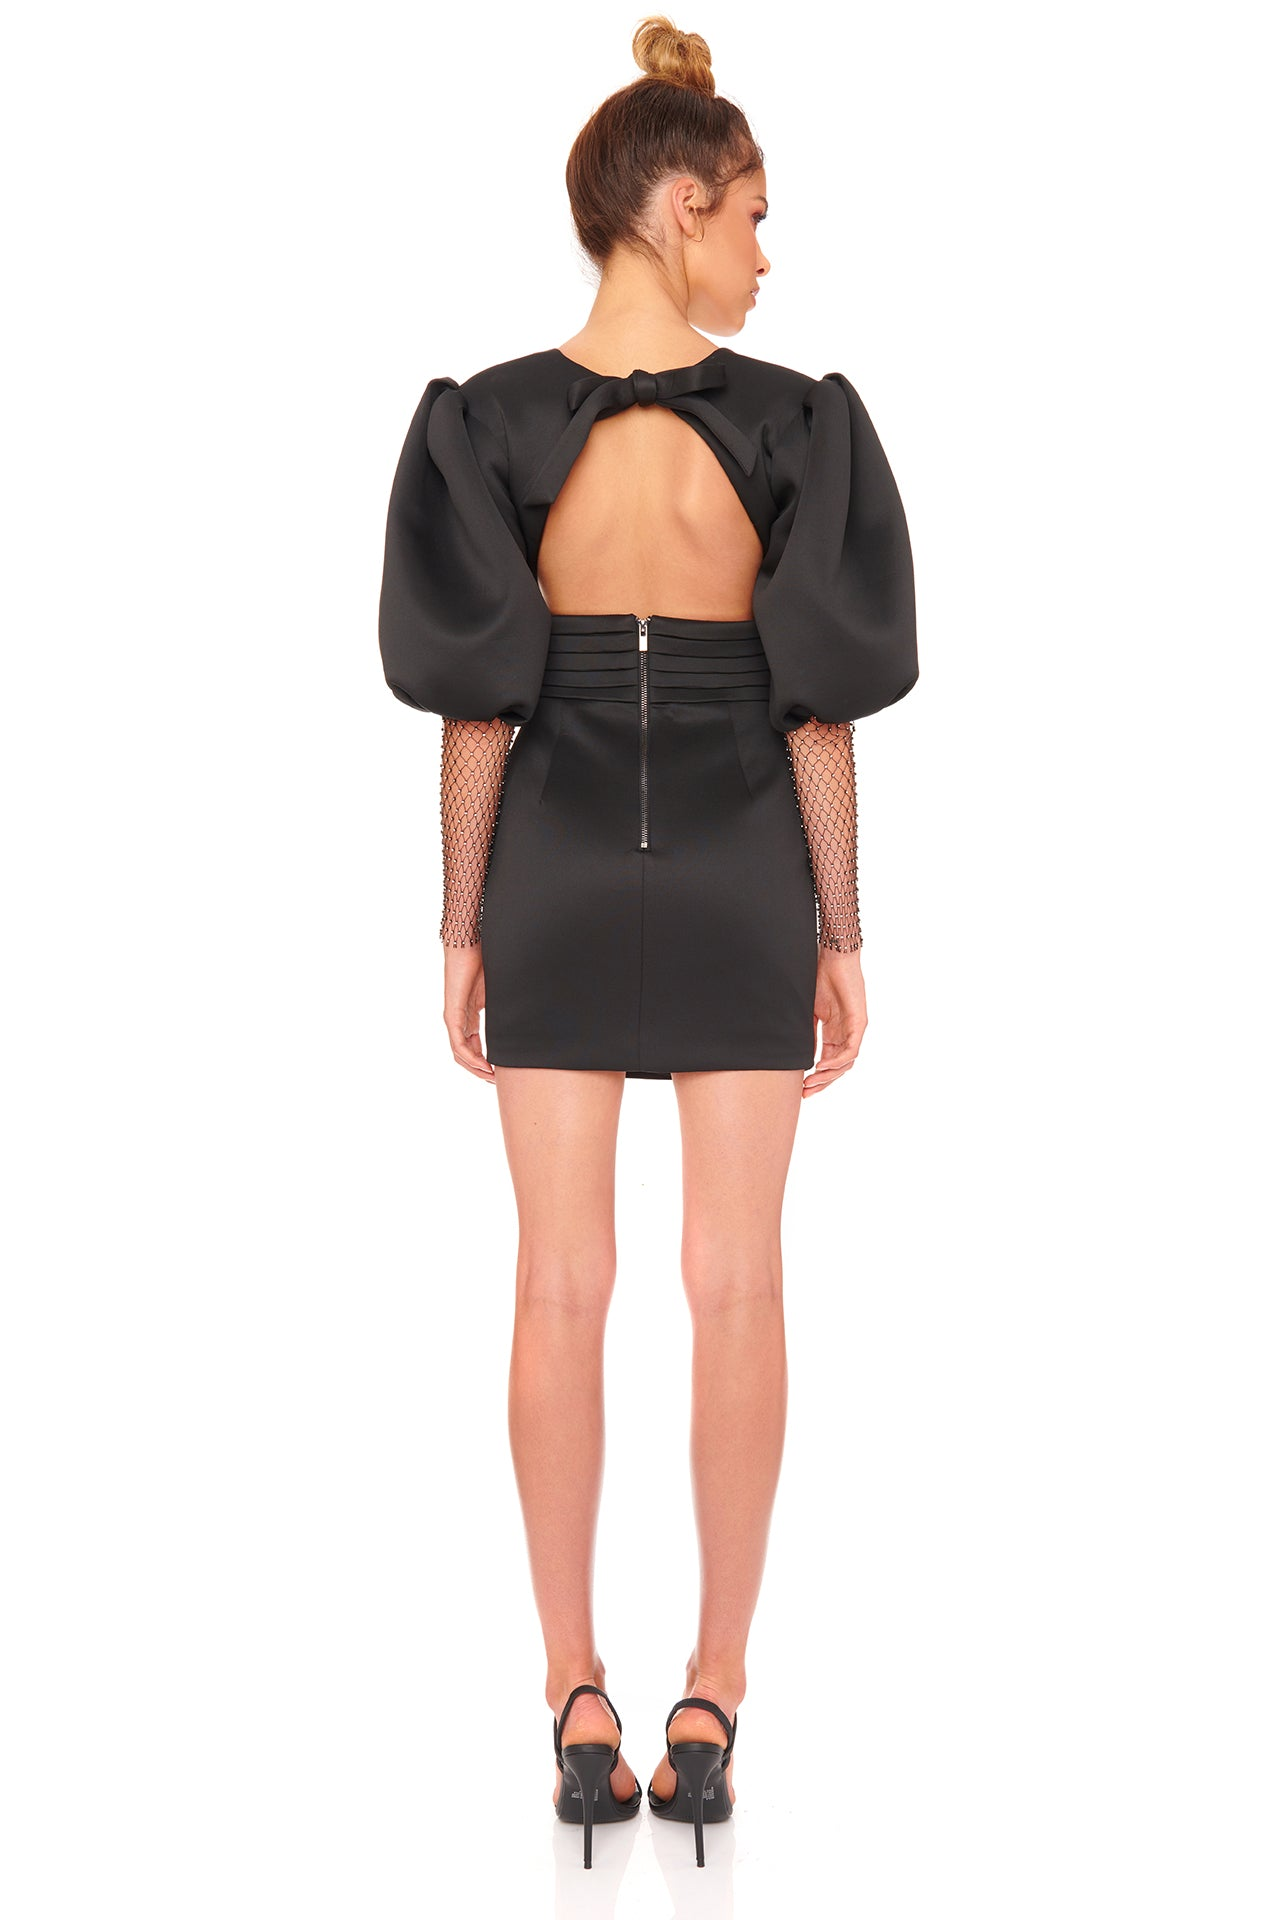 Gravity Dress | Black